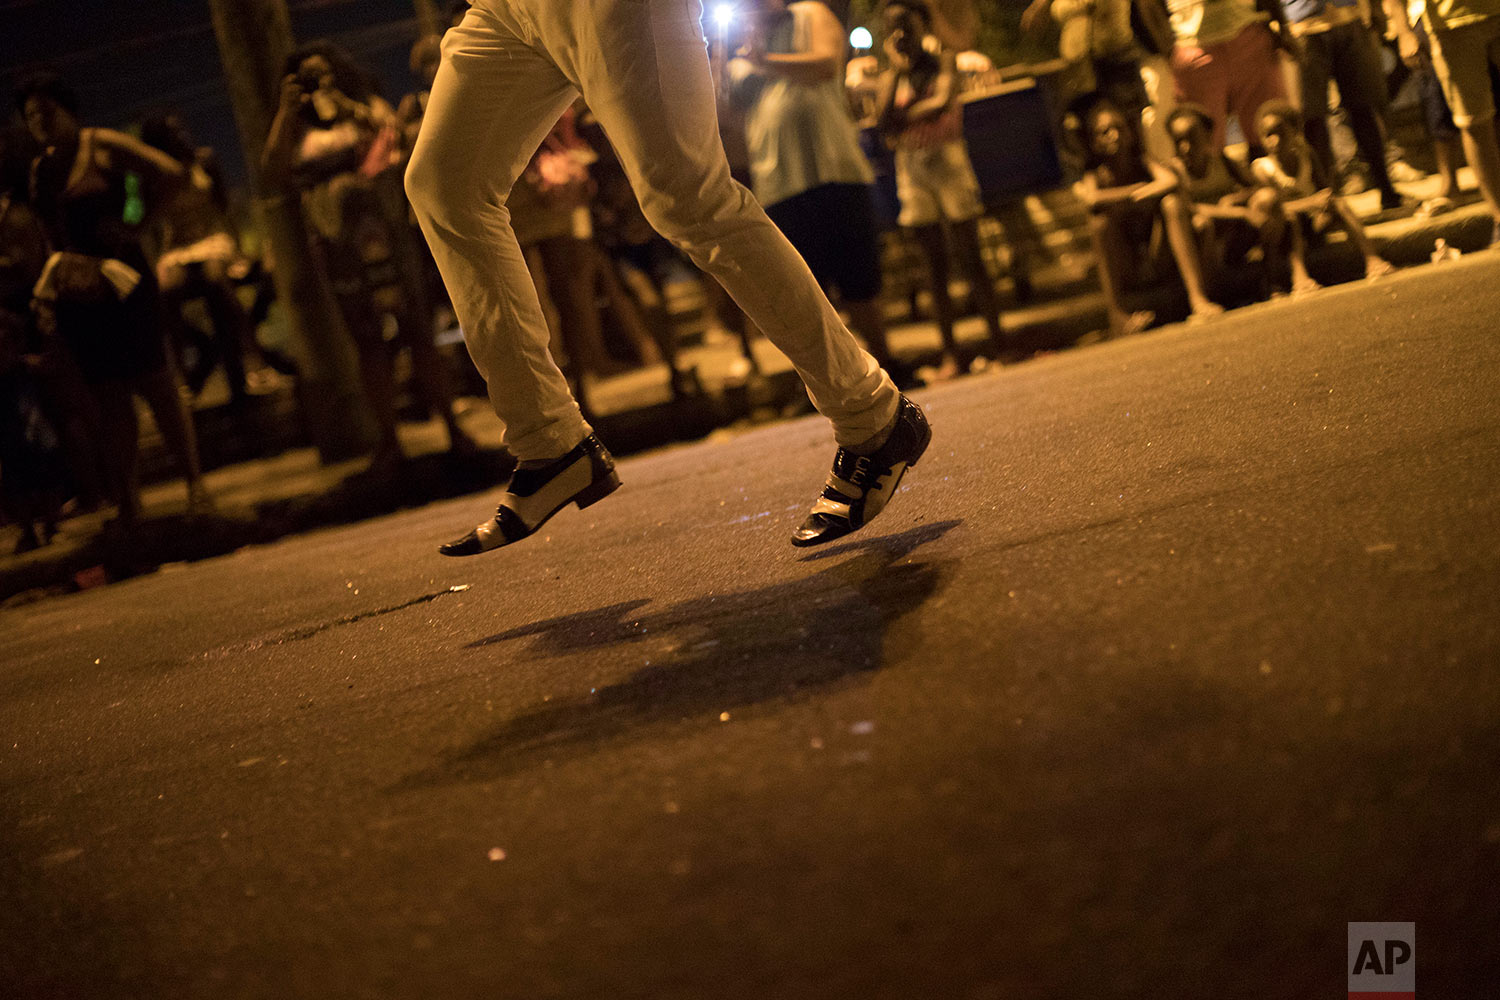 In this Jan. 22, 2018 photo, a member of the Paraiso do Tuiuti samba school rehearses the school's dances and songs, which this year make reference to Brazil's history with slavery, in the streets of Rio de Janeiro, Brazil. In the Sao Cristovao neighborhood, an area where members of the Portuguese royal family used to live, thousands watched as the school rehearsed for its appearance at the Sambadrome on Feb. 11. (AP Photo/Leo Correa)